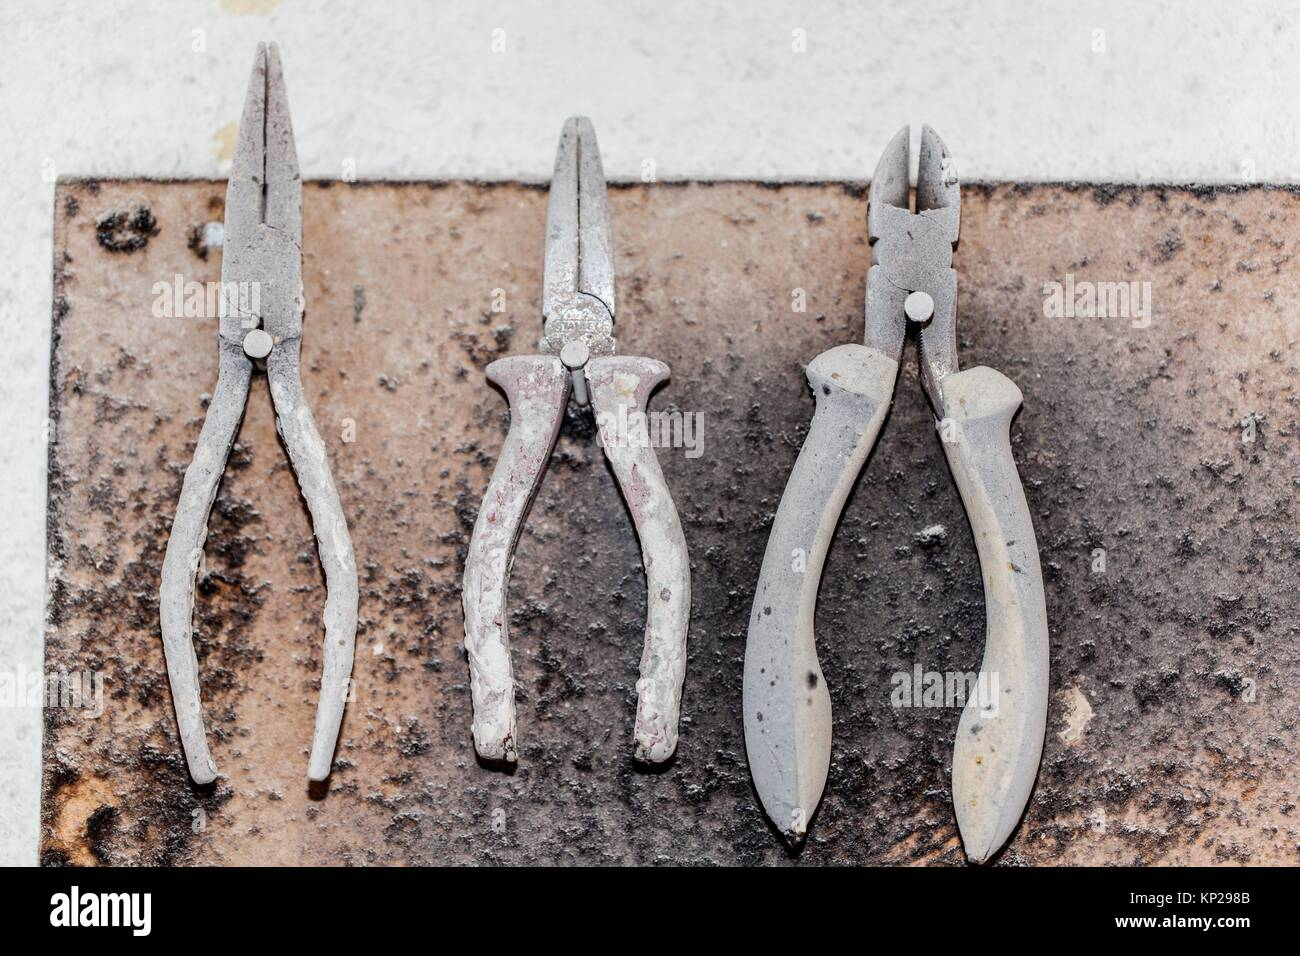 panel of pincers or pliers hanging on a white wall - Stock Image